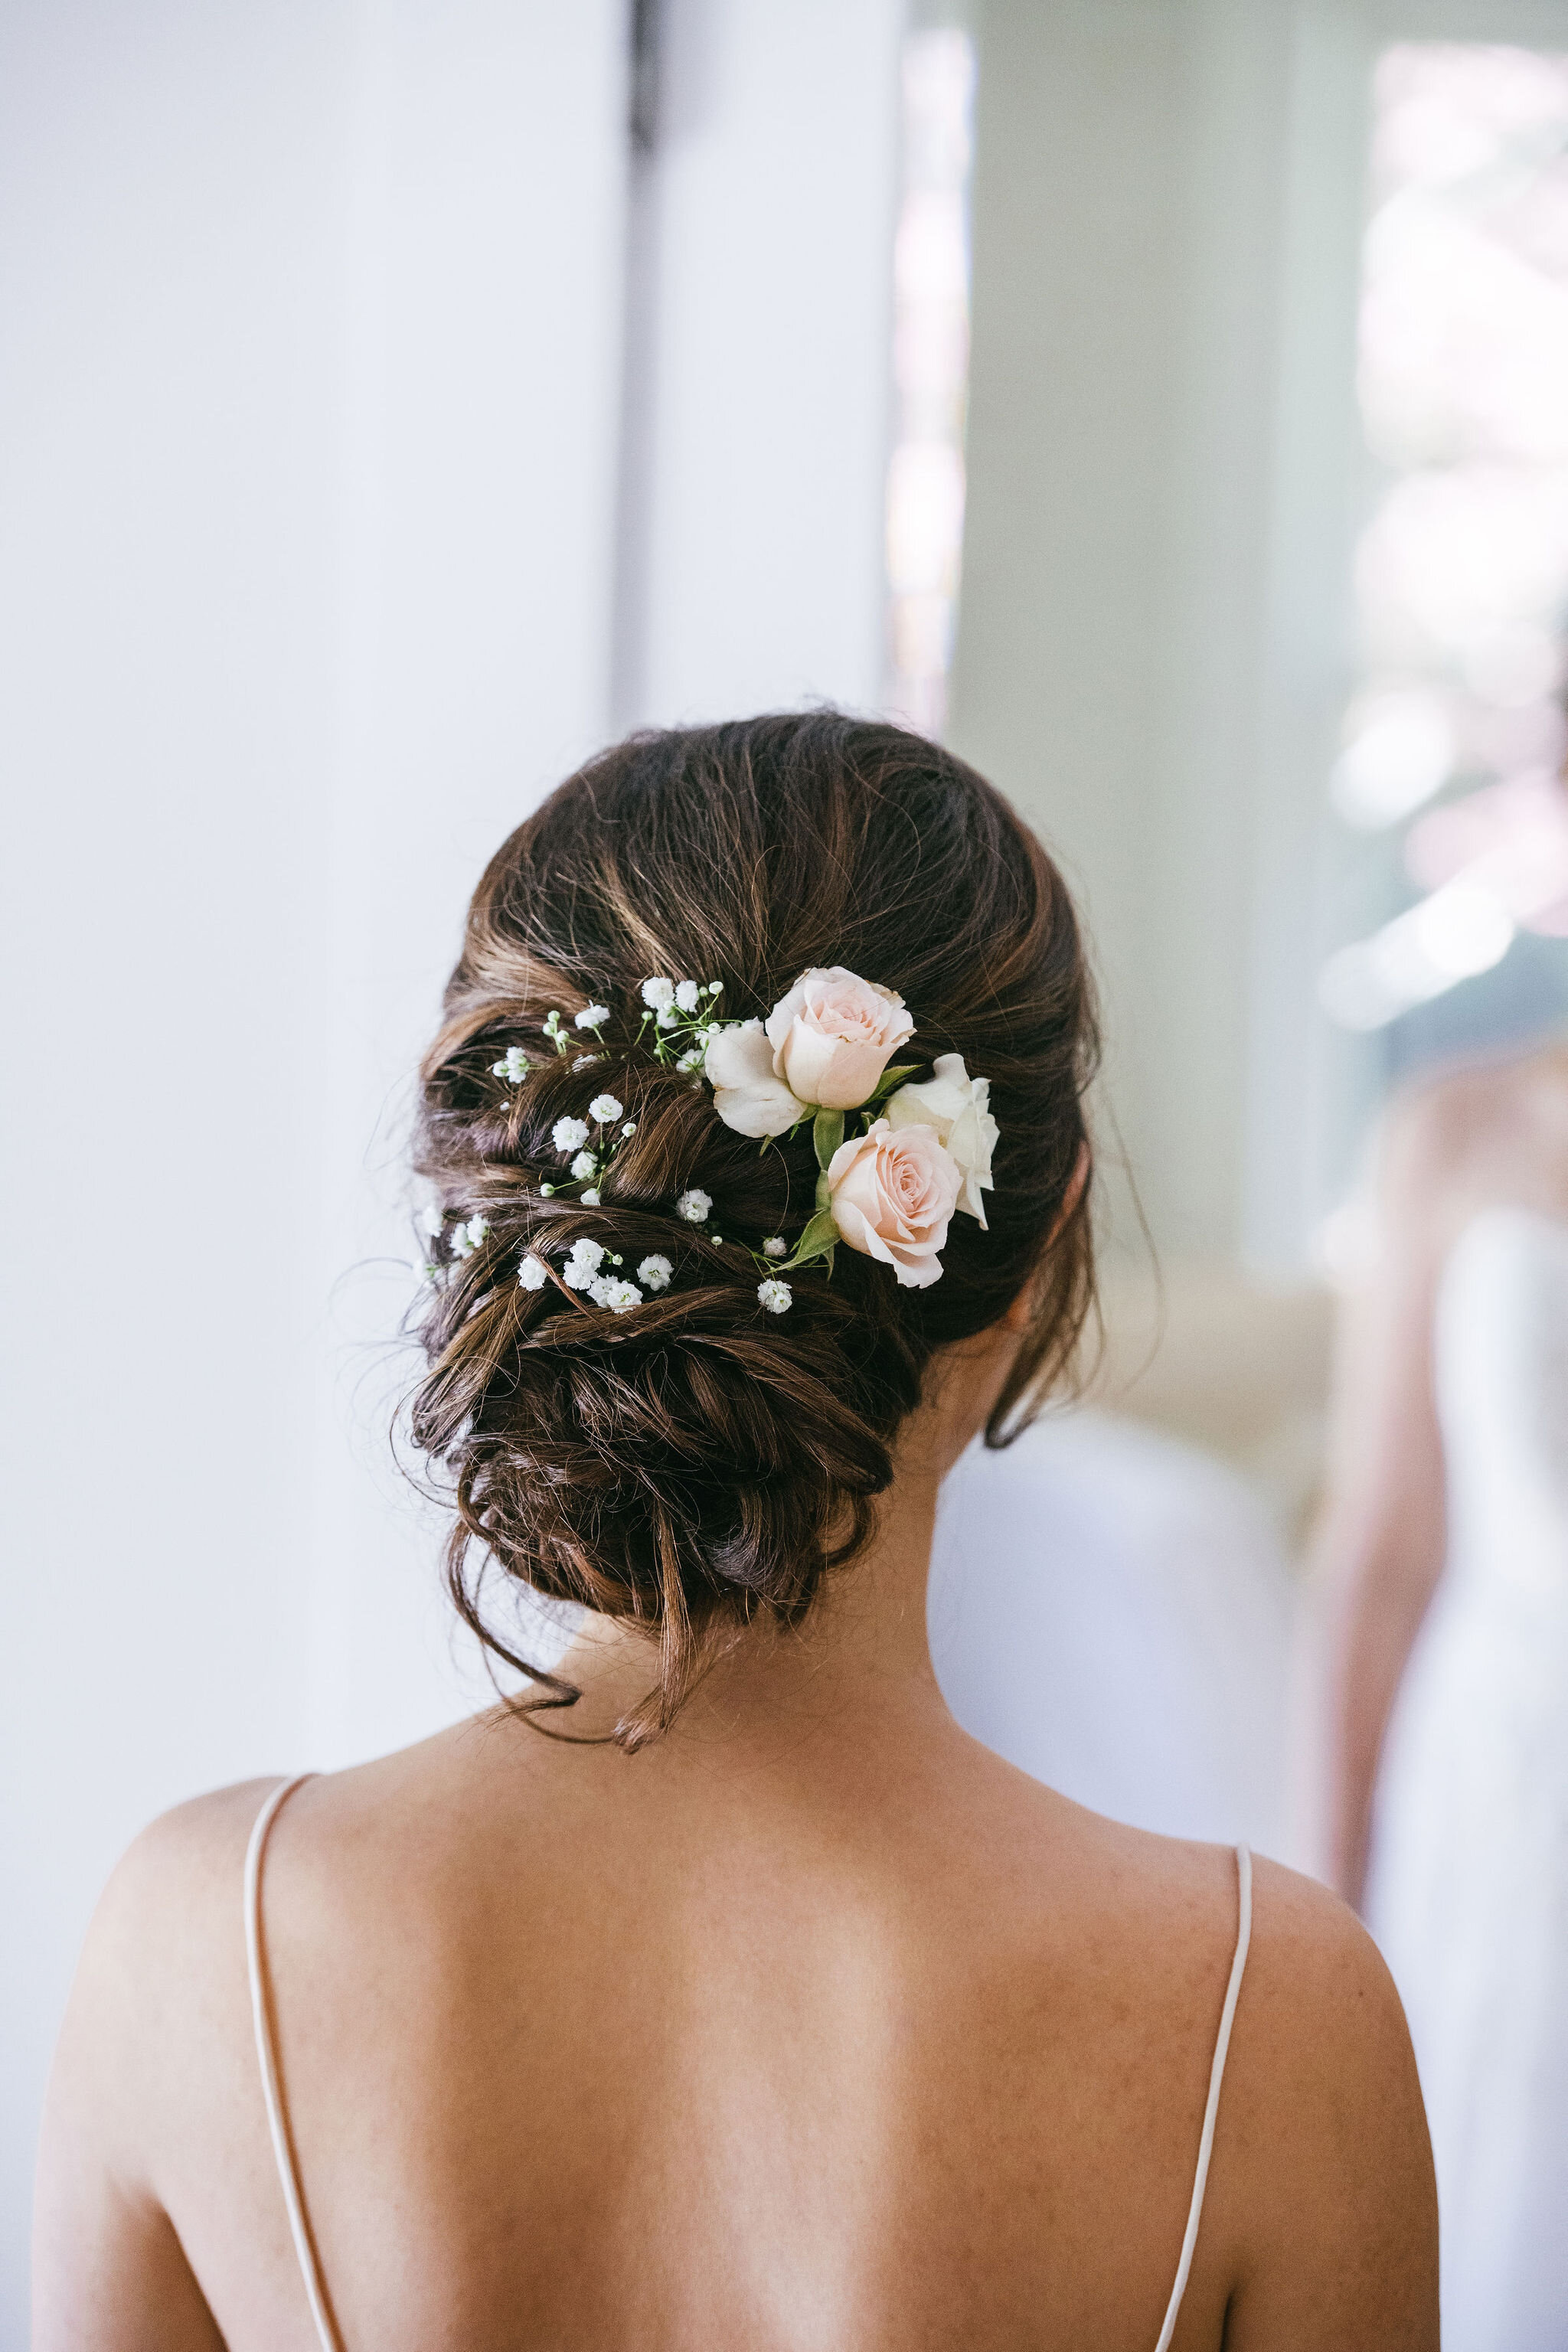 Bridal Hairstyle trial - 1-2 hour serviceBring your inspiration photos, veil and hair pieces or flowers to create your wedding day dream style